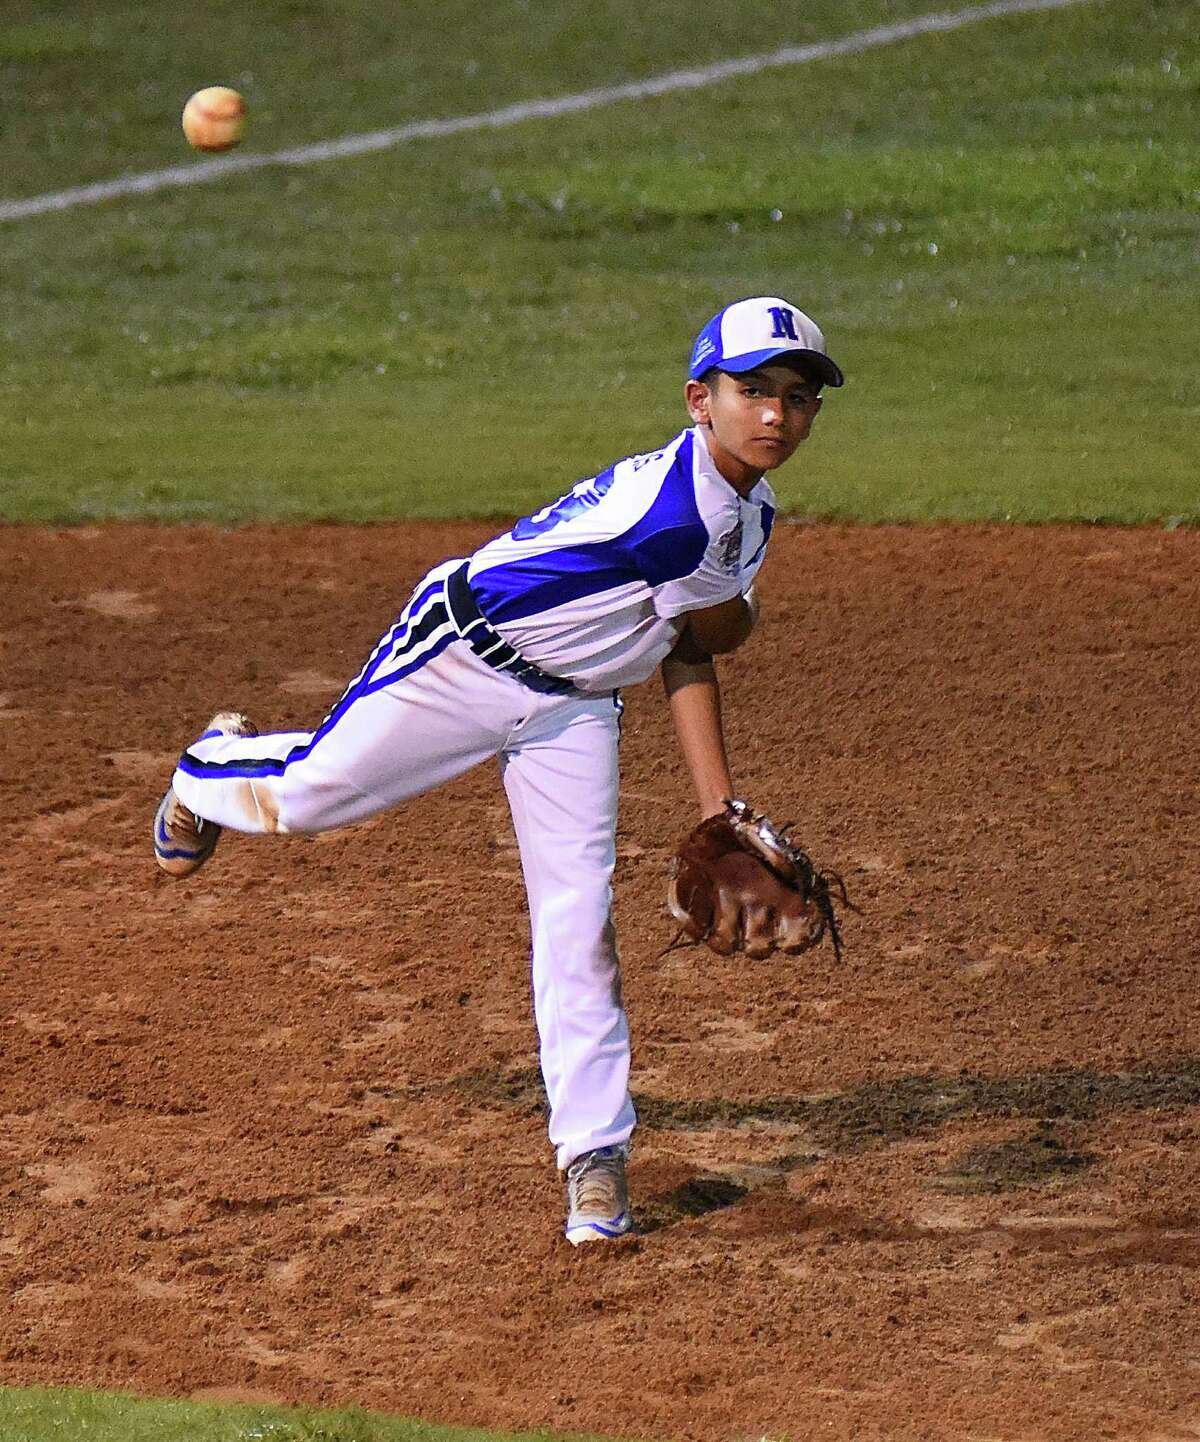 Norwalk third baseman Taso Panagiotidis comes up throwing to first base during Wednesday's Cal Ripken 10-year-old World Series quarterfinal against East Lake Baseball of South Bend, Ind.